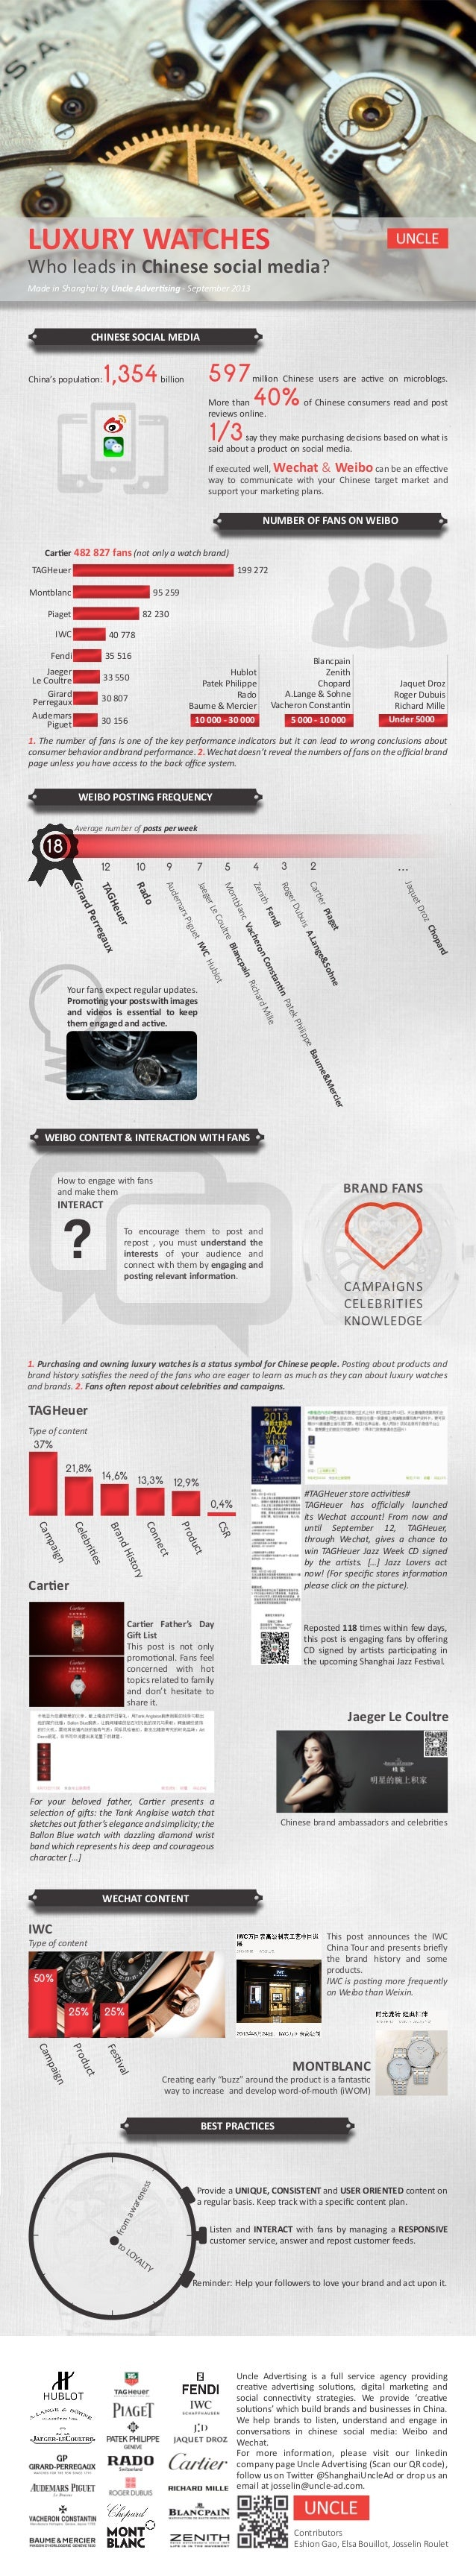 10 000 - 30 000 If executed well, Wechat & Weibo can be an effective way to communicate with your Chinese target market a...